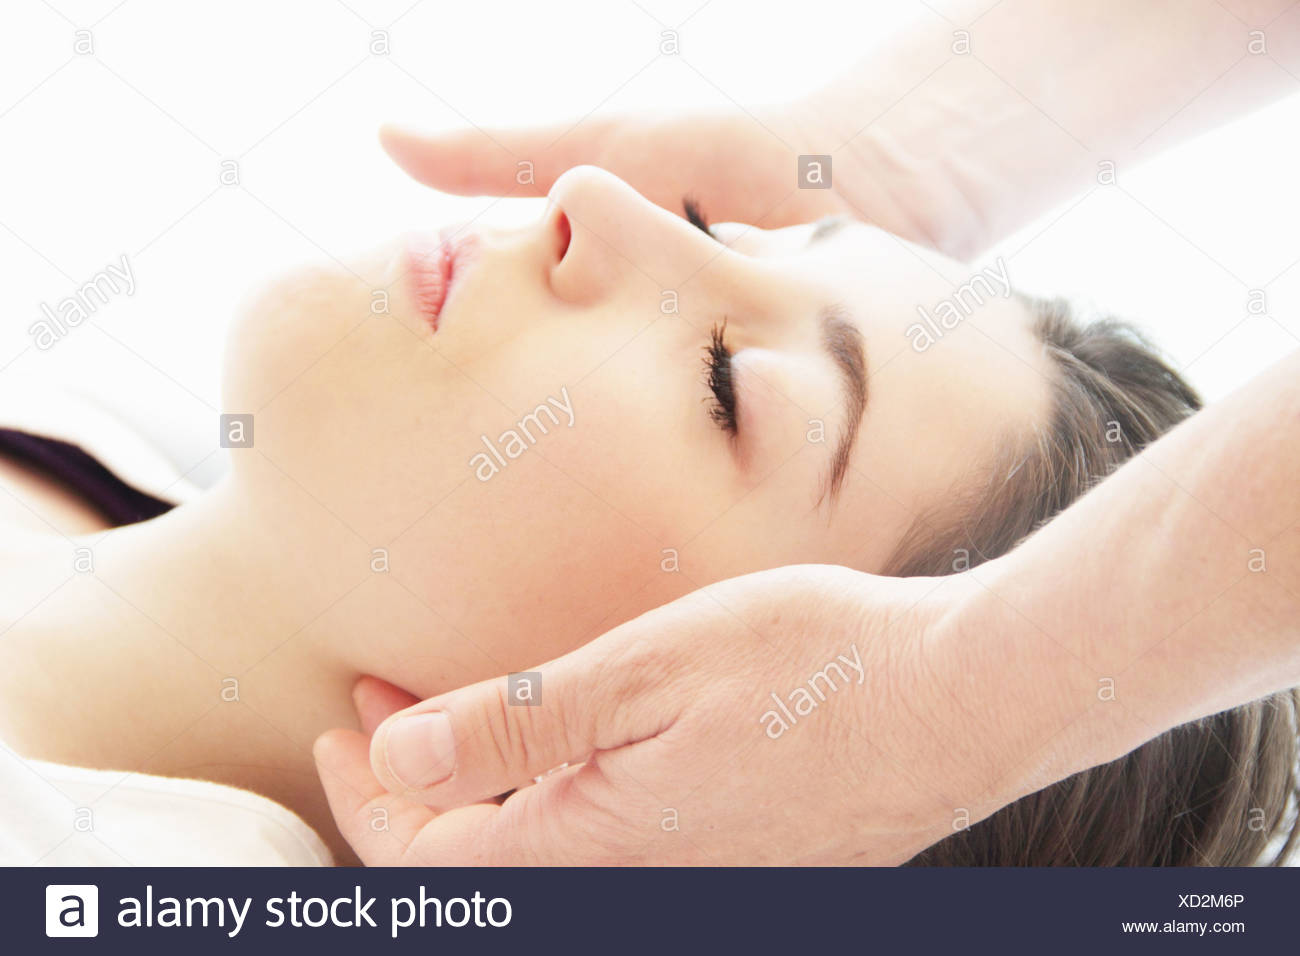 Woman having facial massage in spa Stock Photo